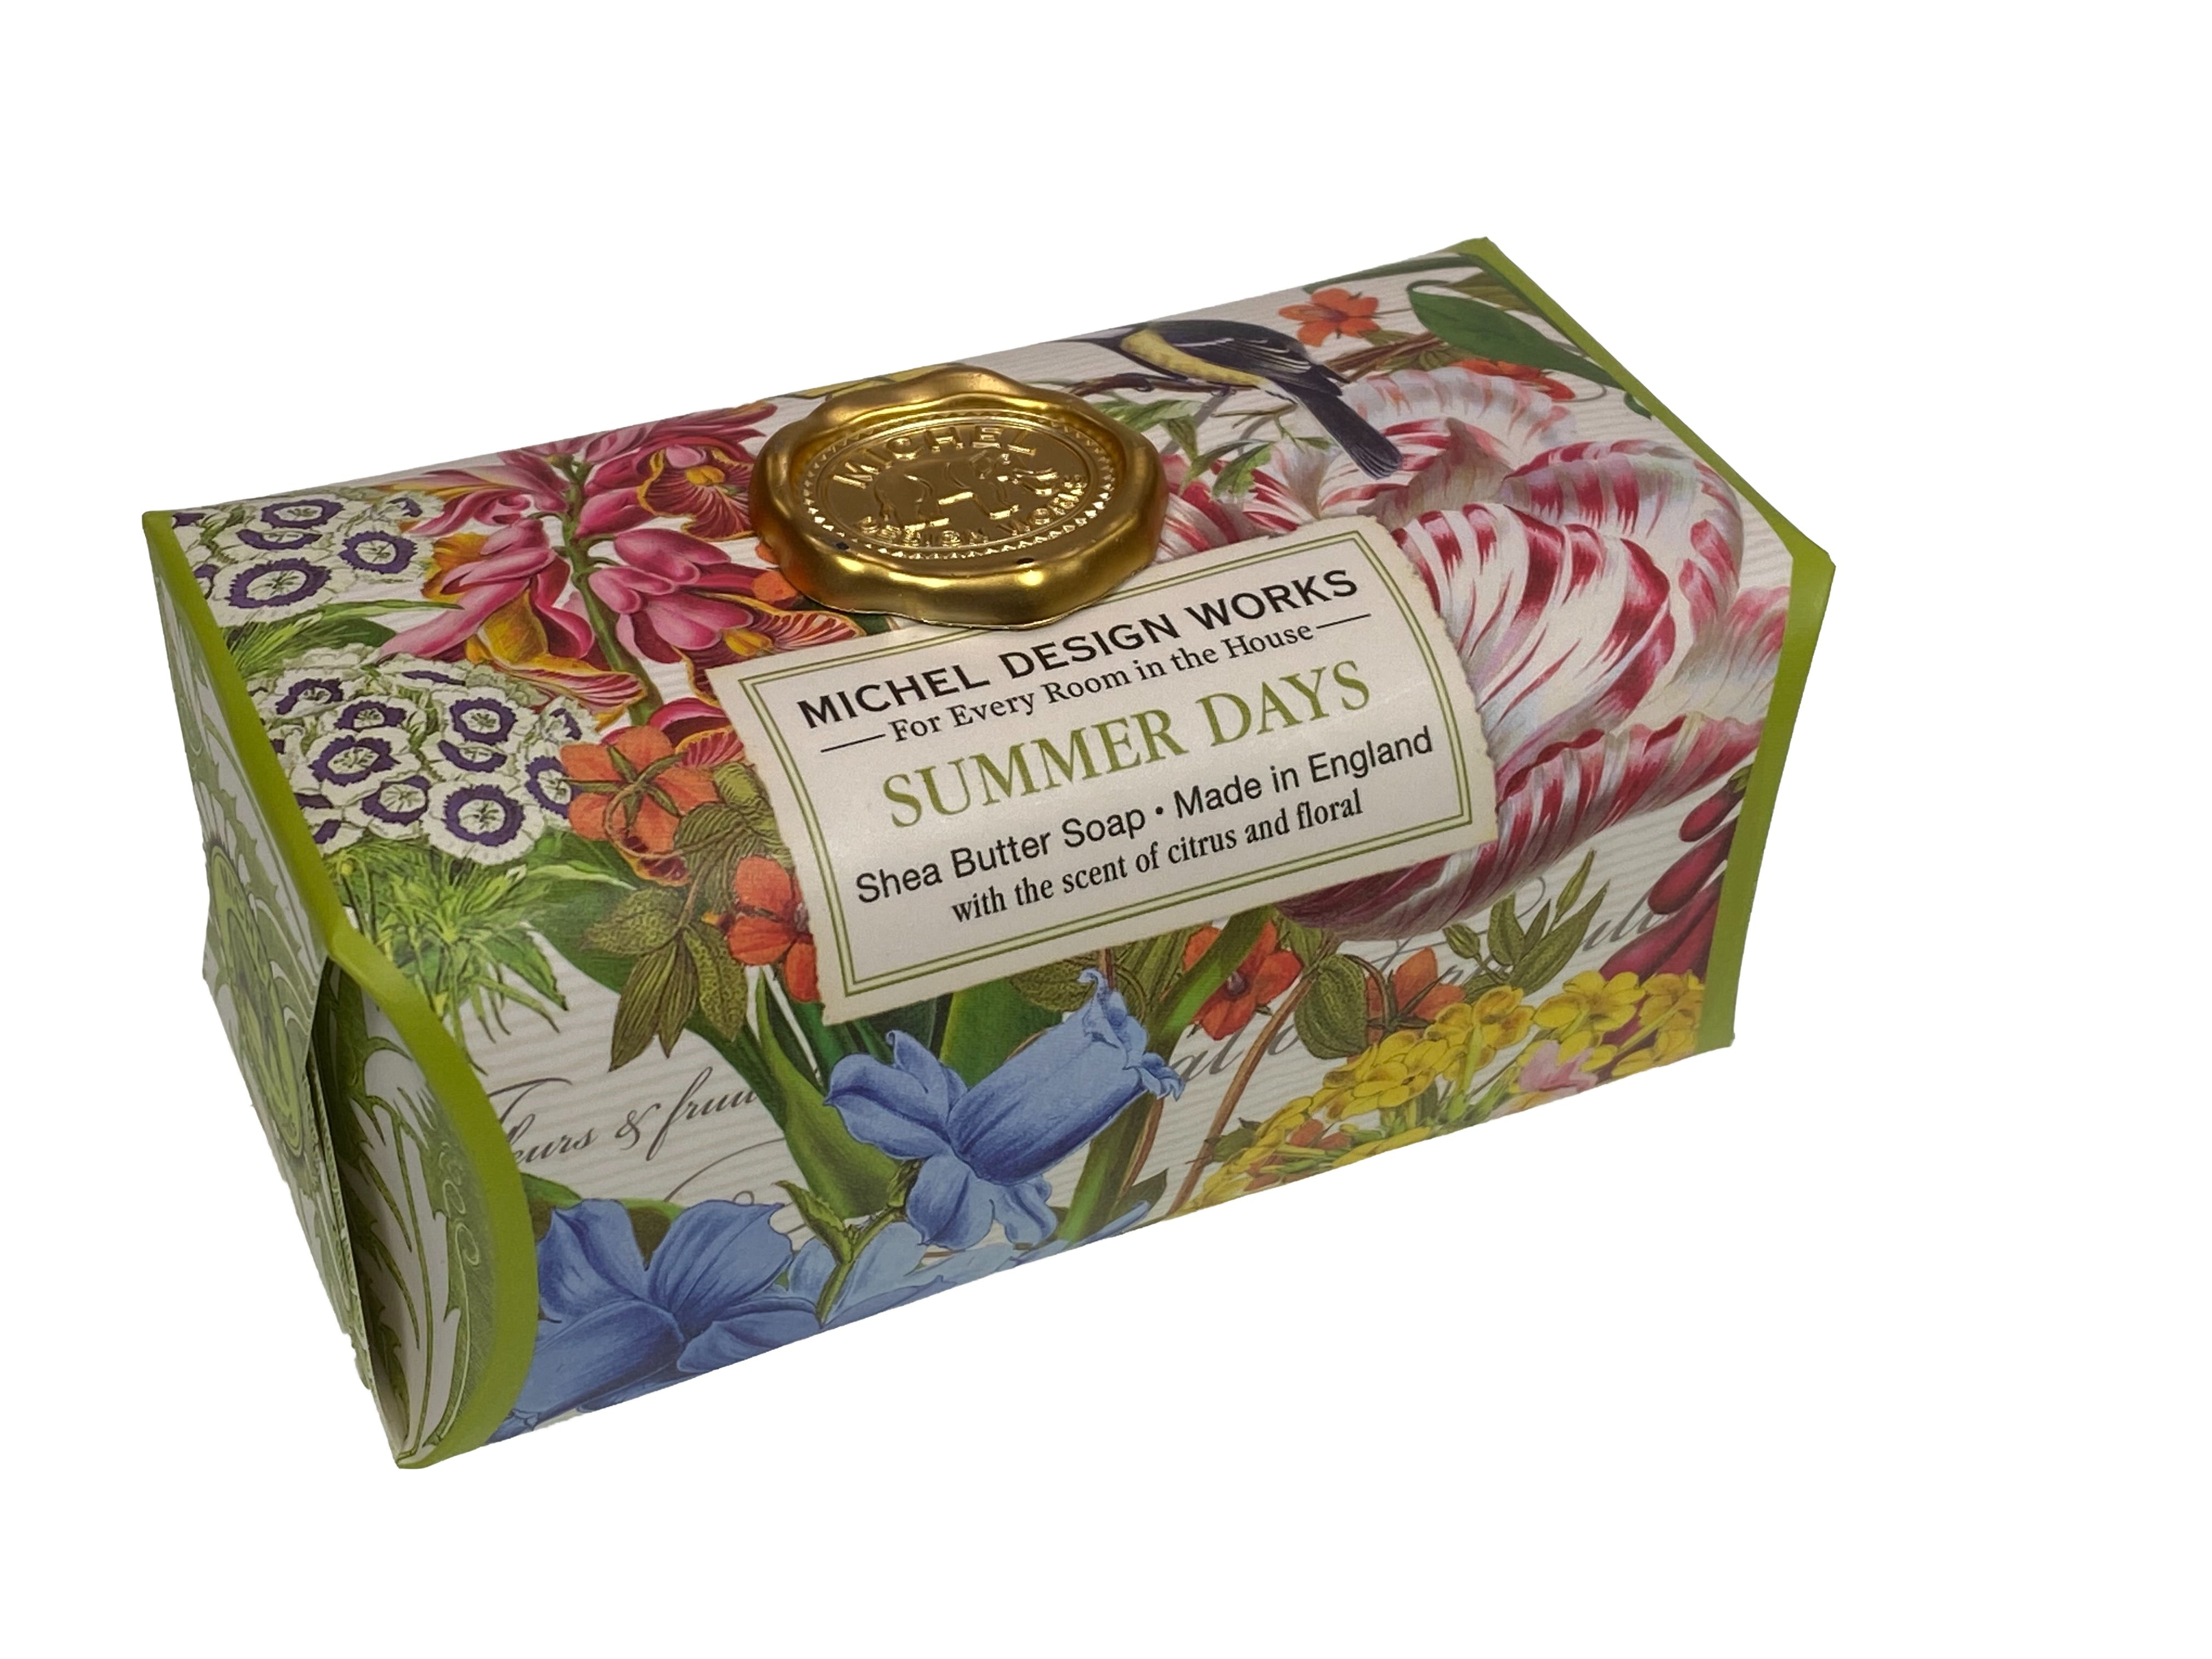 Summer Days Large Shea Butter Soap